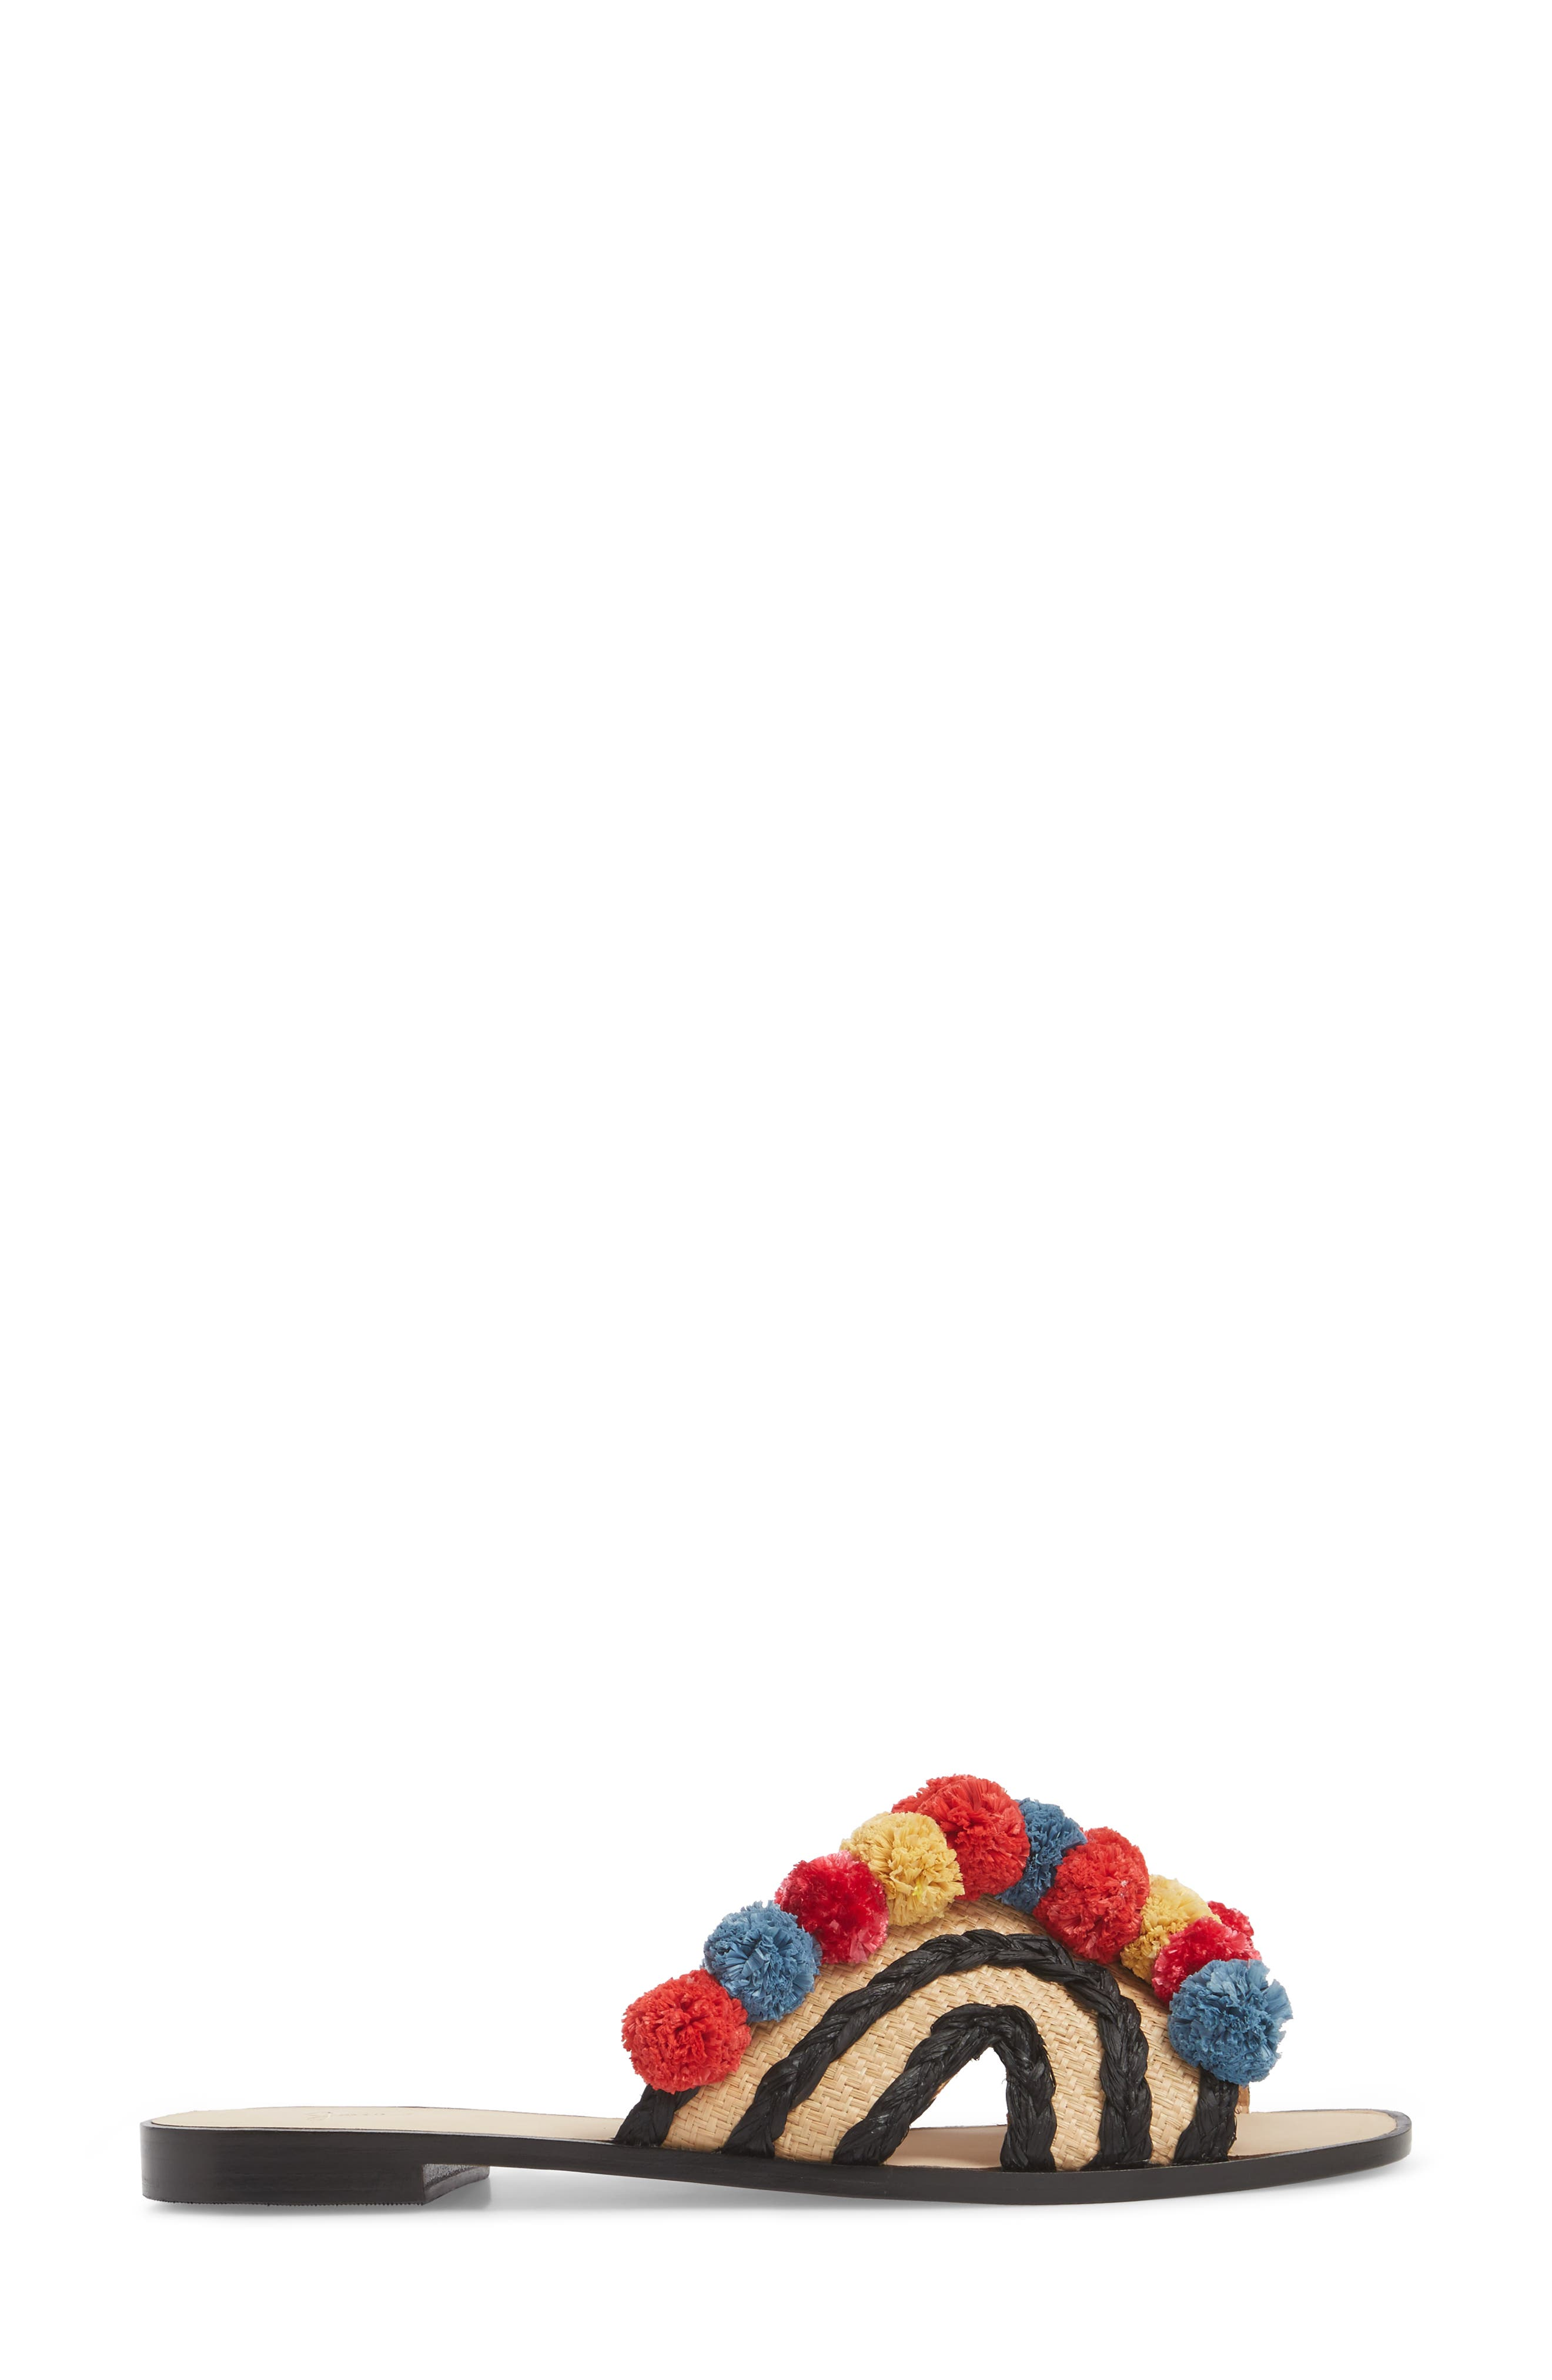 Paden Pompom Slide Sandals,                             Alternate thumbnail 3, color,                             002